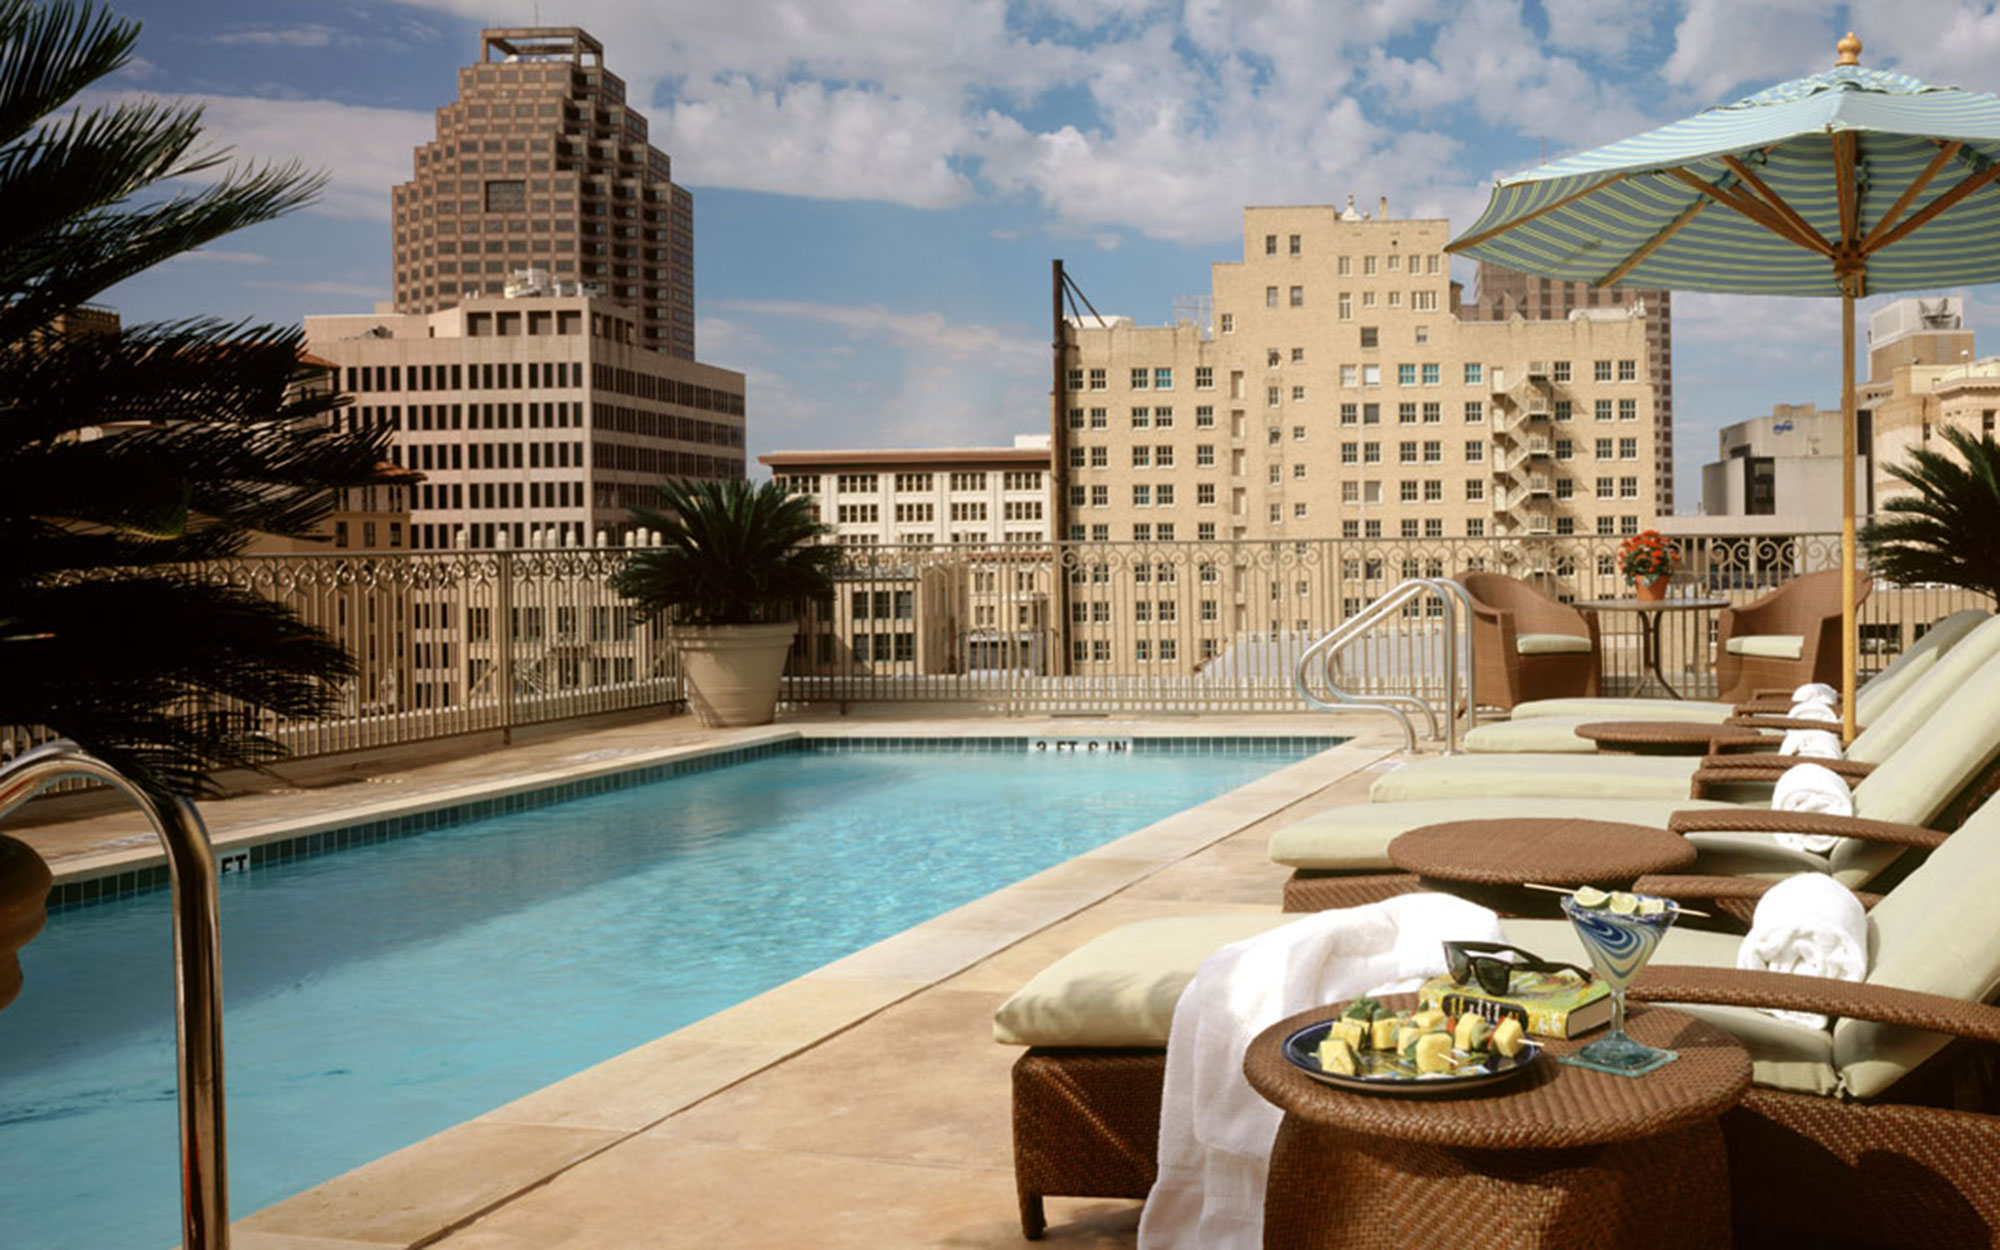 No. 14: Mokara Hotel & Spa, San Antonio, Texas